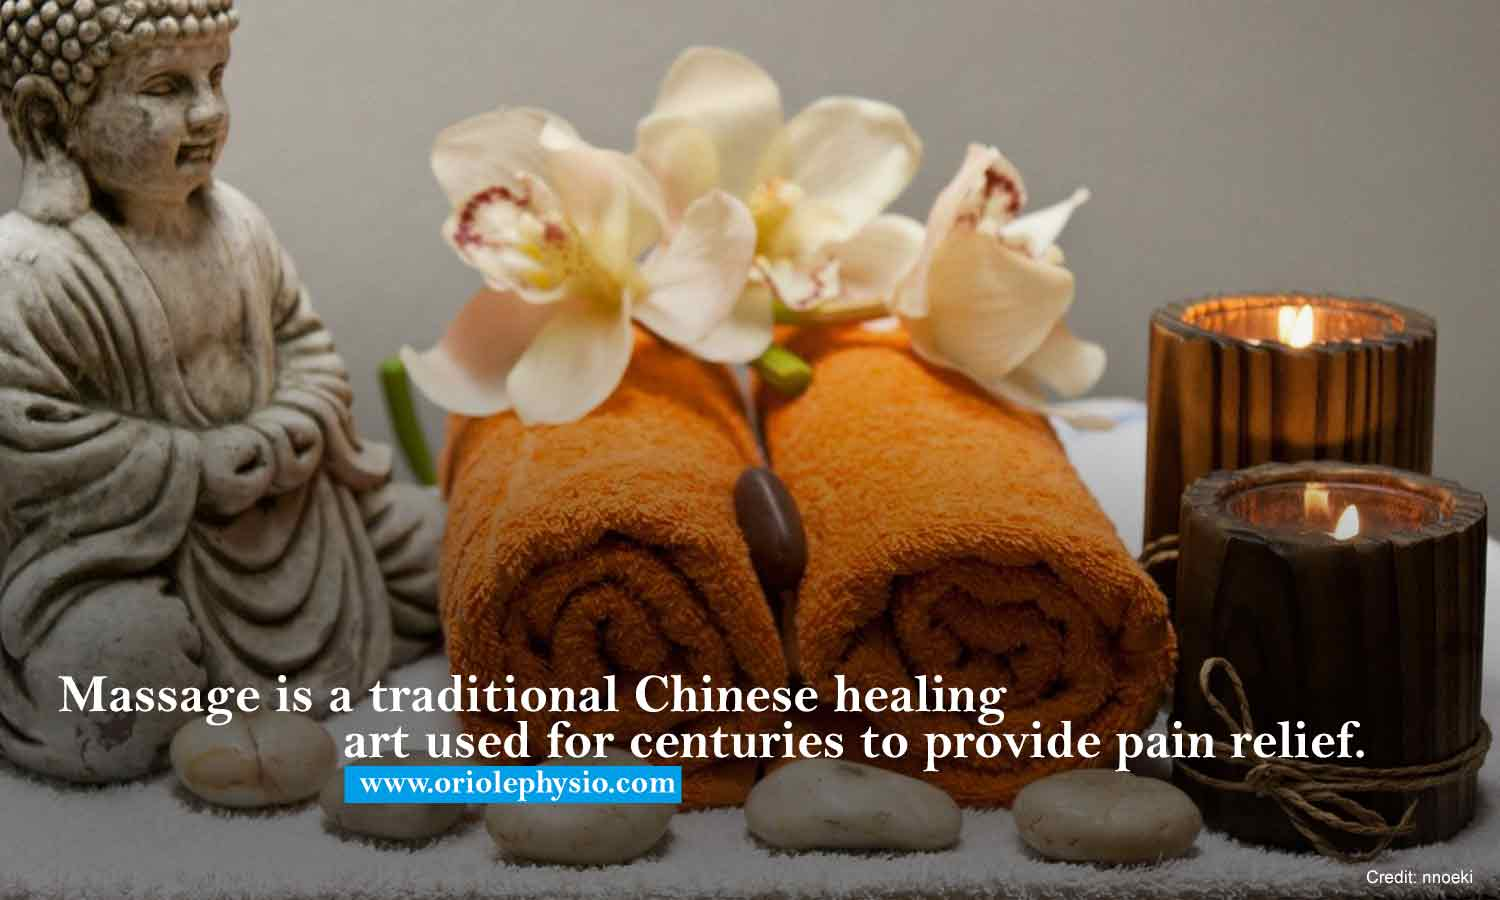 Massage is a traditional Chinese healing art used for centuries to provide pain relief.